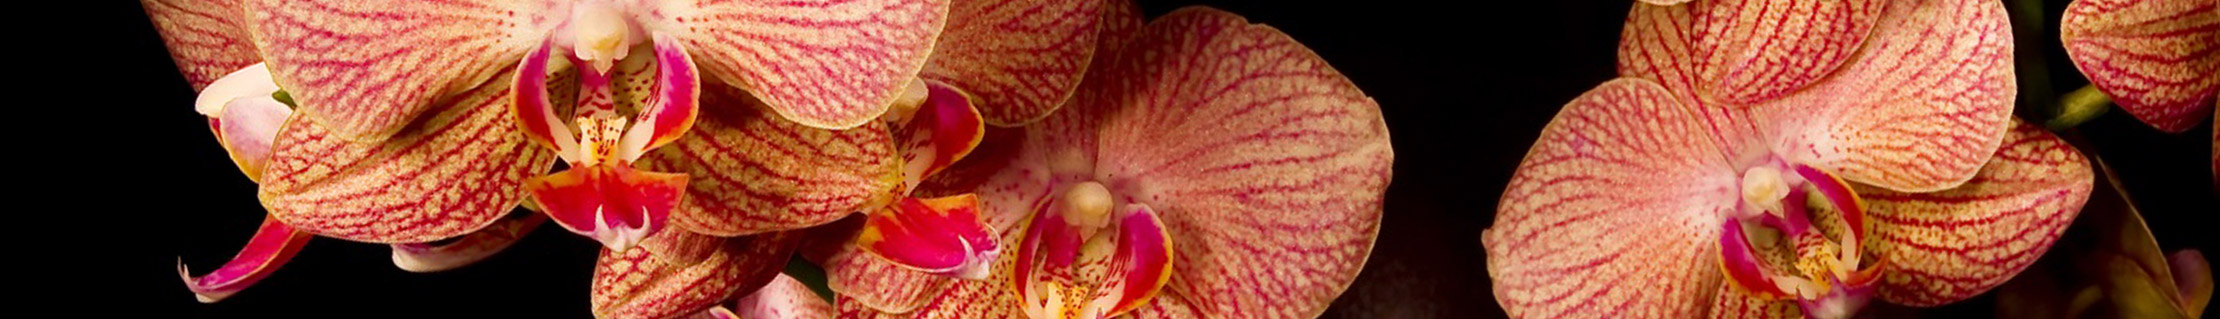 orchid resembles female clitoris